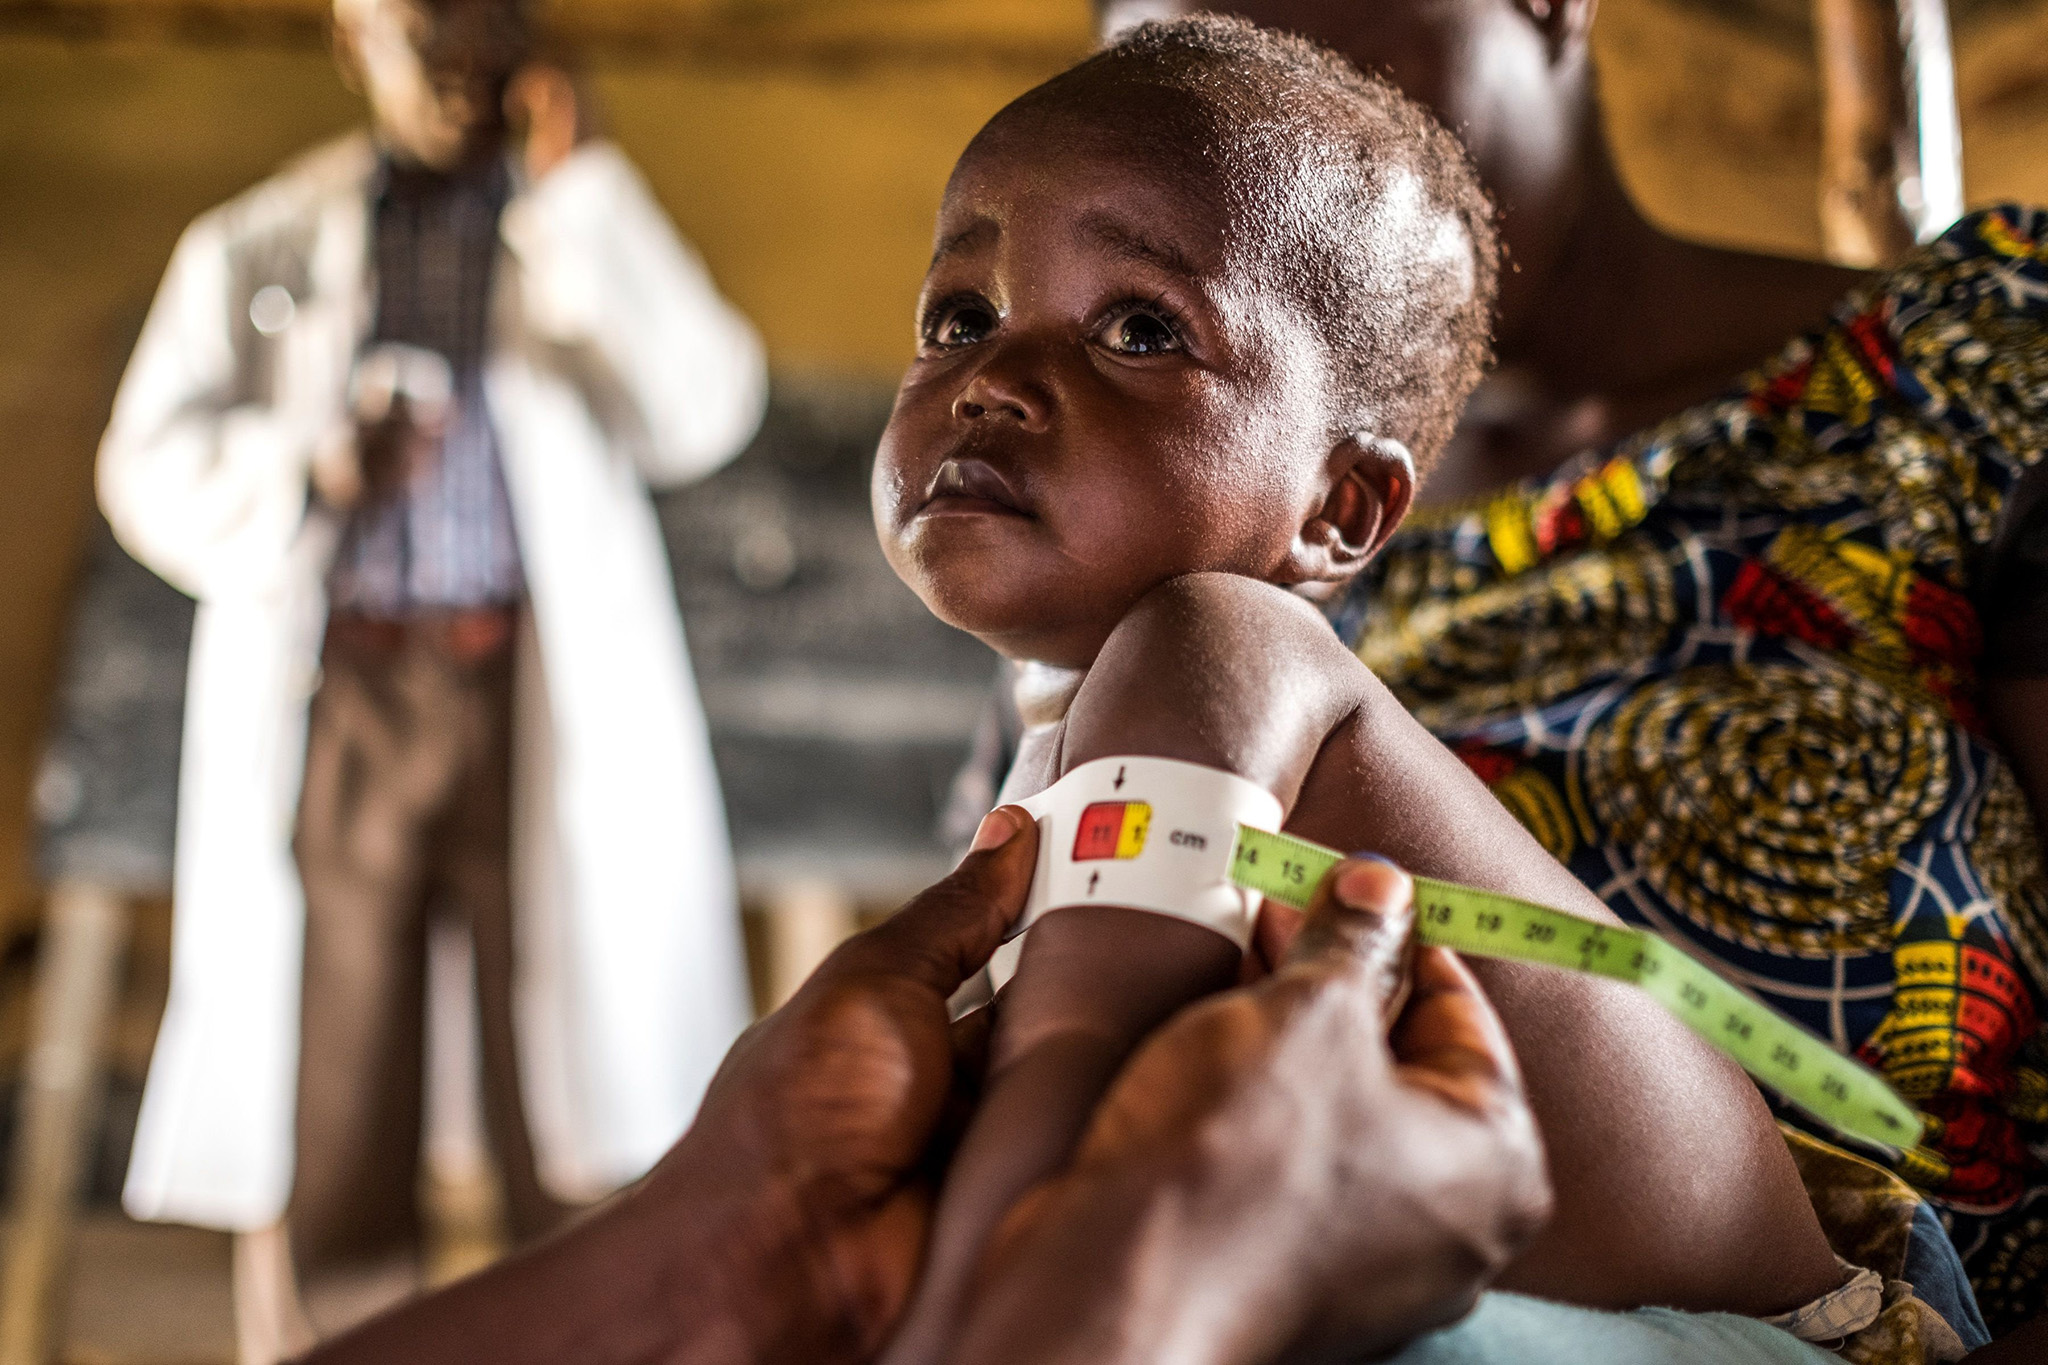 - Health personnel measures a child as part of a program for malnourished children sponsored by the World Food Program at a Health Center in Mavivi, Beni territory, Eastern D.R.Congo, on November 15, 2016.  Malnutrition is very common in the country and the problem has been amplified lately in the area by the influx of displaced people fleeing a surge in violence. / AFP PHOTO / Eduardo Soteras / The erroneous mention[s] appearing in the metadata of this photo by Eduardo Soteras has been modified in AFP systems in the following manner: [Mavivi] instead of [Mbau]. Please immediately remove the erroneous mention[s] from all your online services and delete it (them) from your servers. If you have been authorized by AFP to distribute it (them) to third parties, please ensure that the same actions are carried out by them. Failure to promptly comply with these instructions will entail liability on your part for any continued or post notification usage. Therefore we thank you very much for all your attention and prompt action. We are sorry for the inconvenience this notification may cause and remain at your disposal for any further information you may require.EDUARDO SOTERAS/AFP/Getty Images